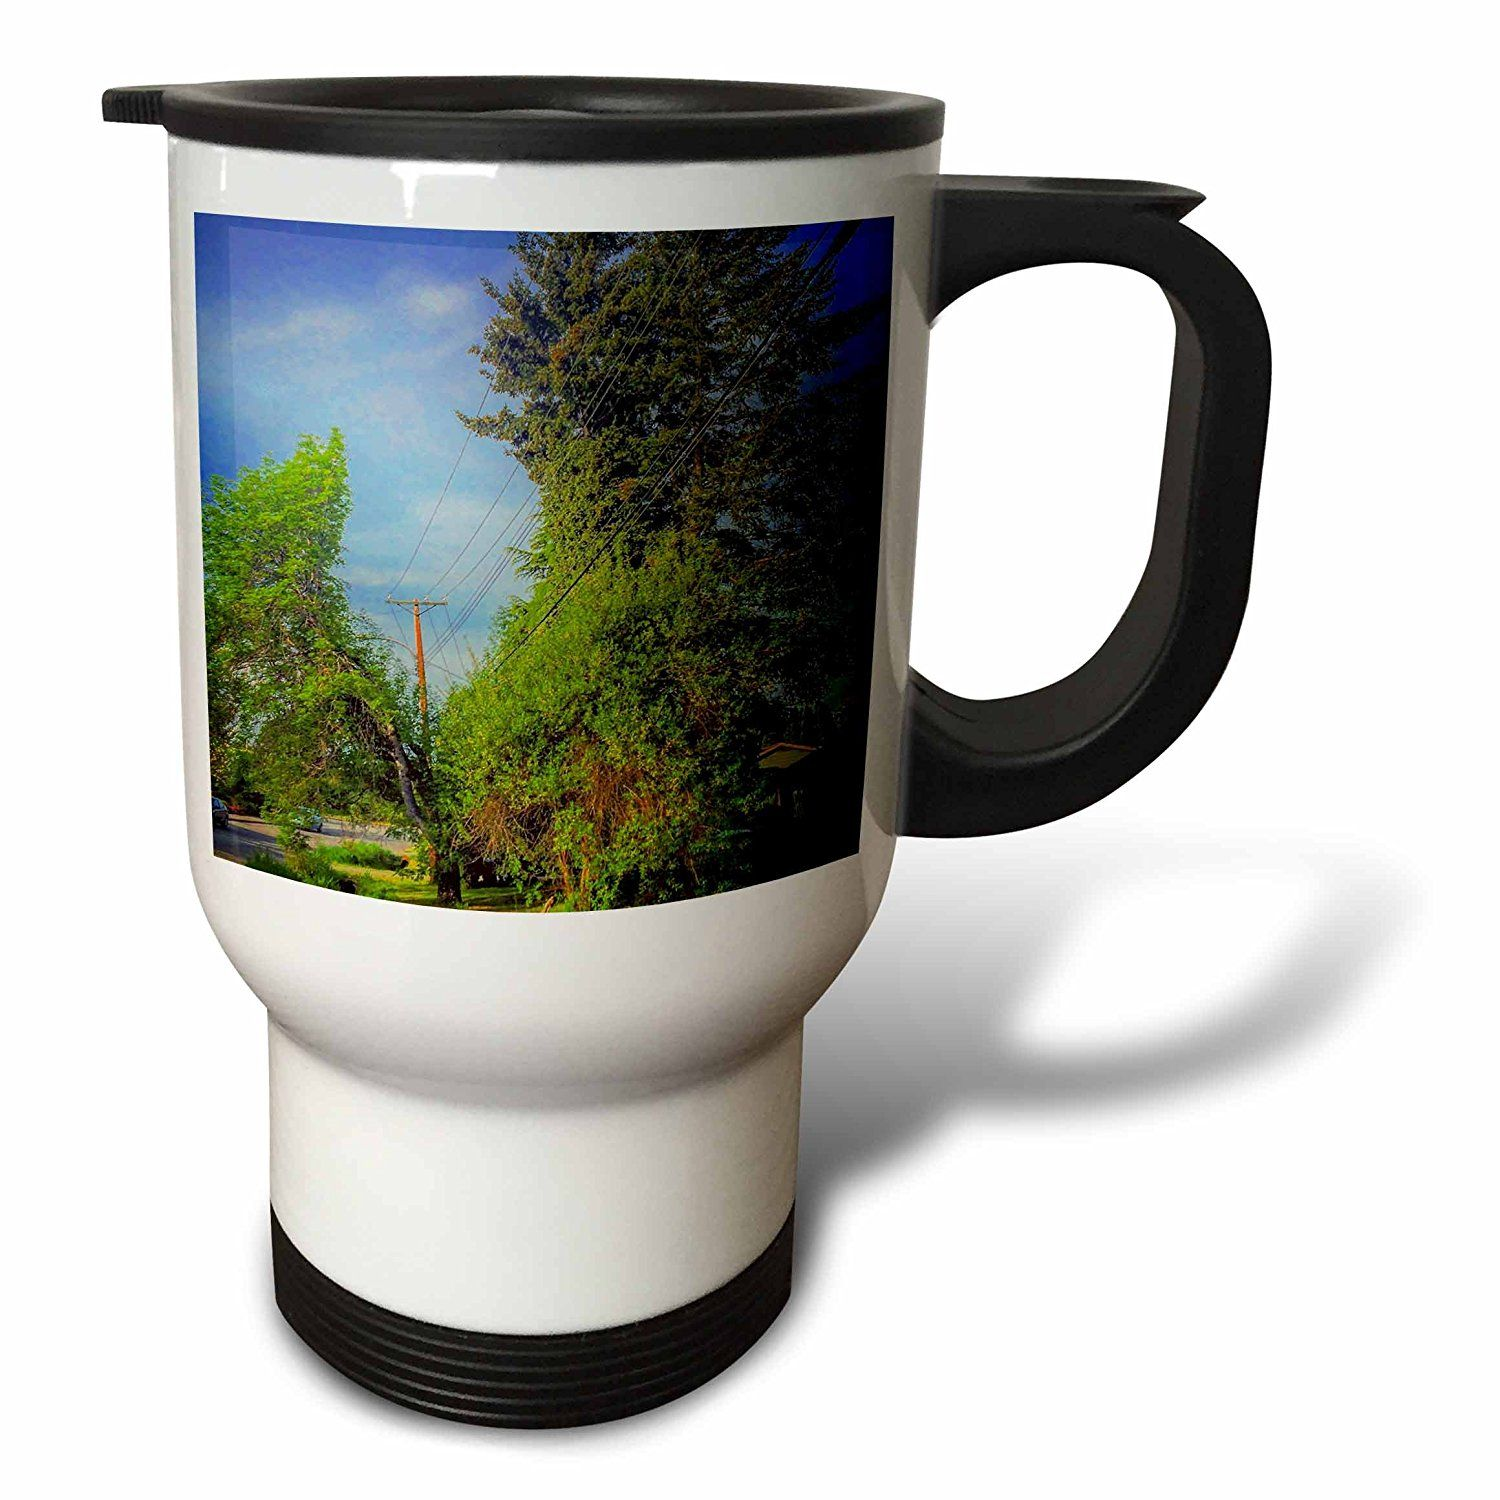 #coffee #mug #drivesafe #commuter #travel #cup #drink #gifts #art Amazon.com: DYLAN SEIBOLD - PHOTOGRAPHY - TREES BY HOUSES - 14oz Stainless Steel Travel Mug (tm_244551_1): Kitchen & Dining